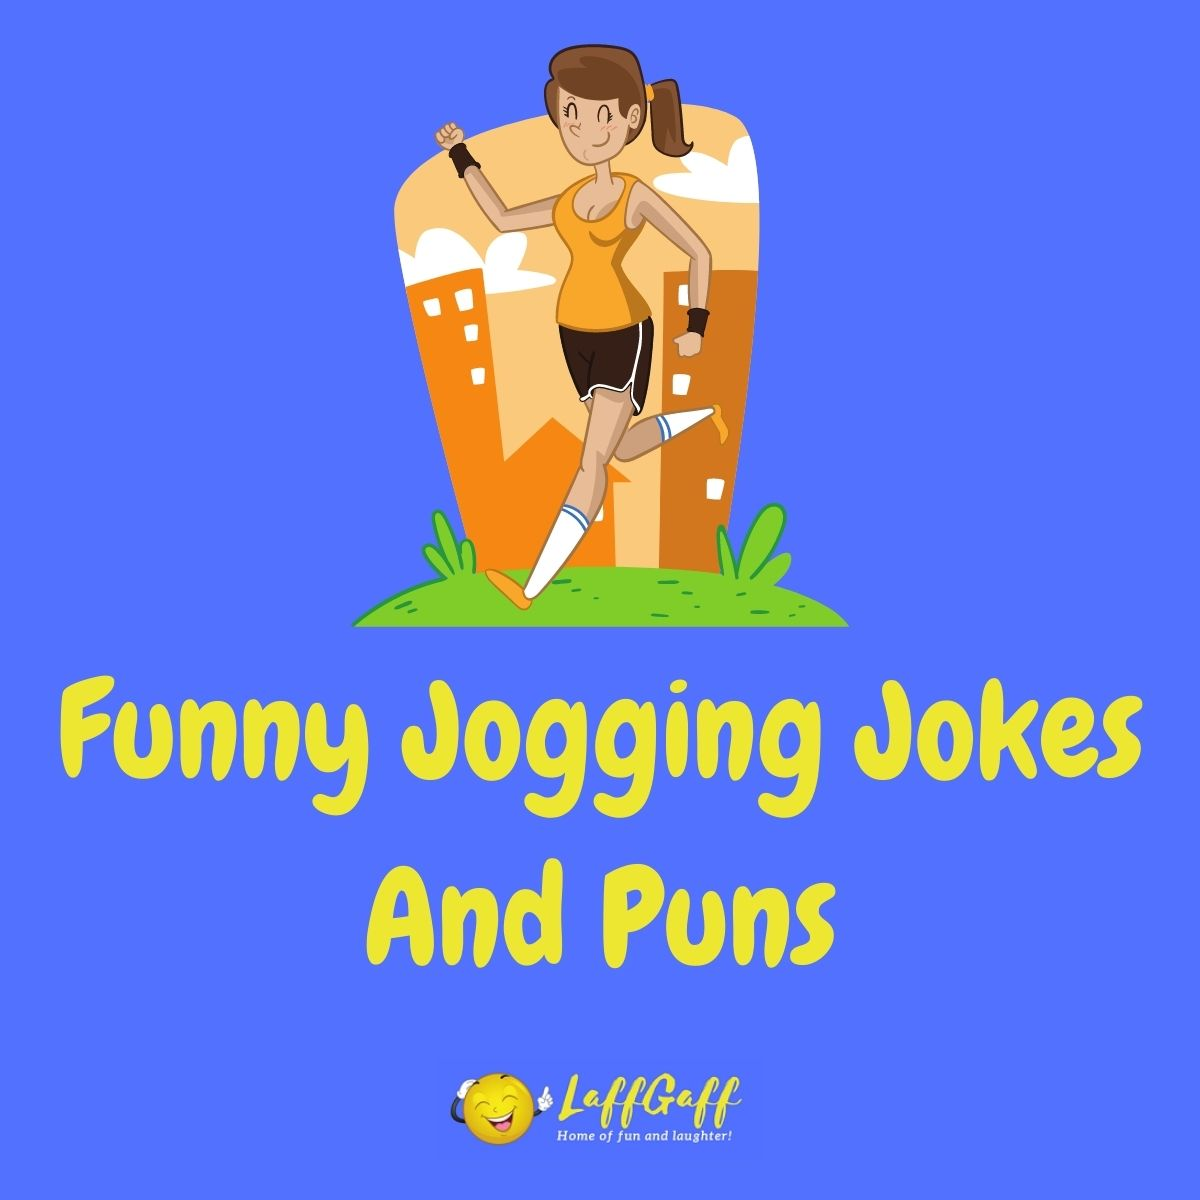 Featured image for a page of funny jogging jokes and puns.